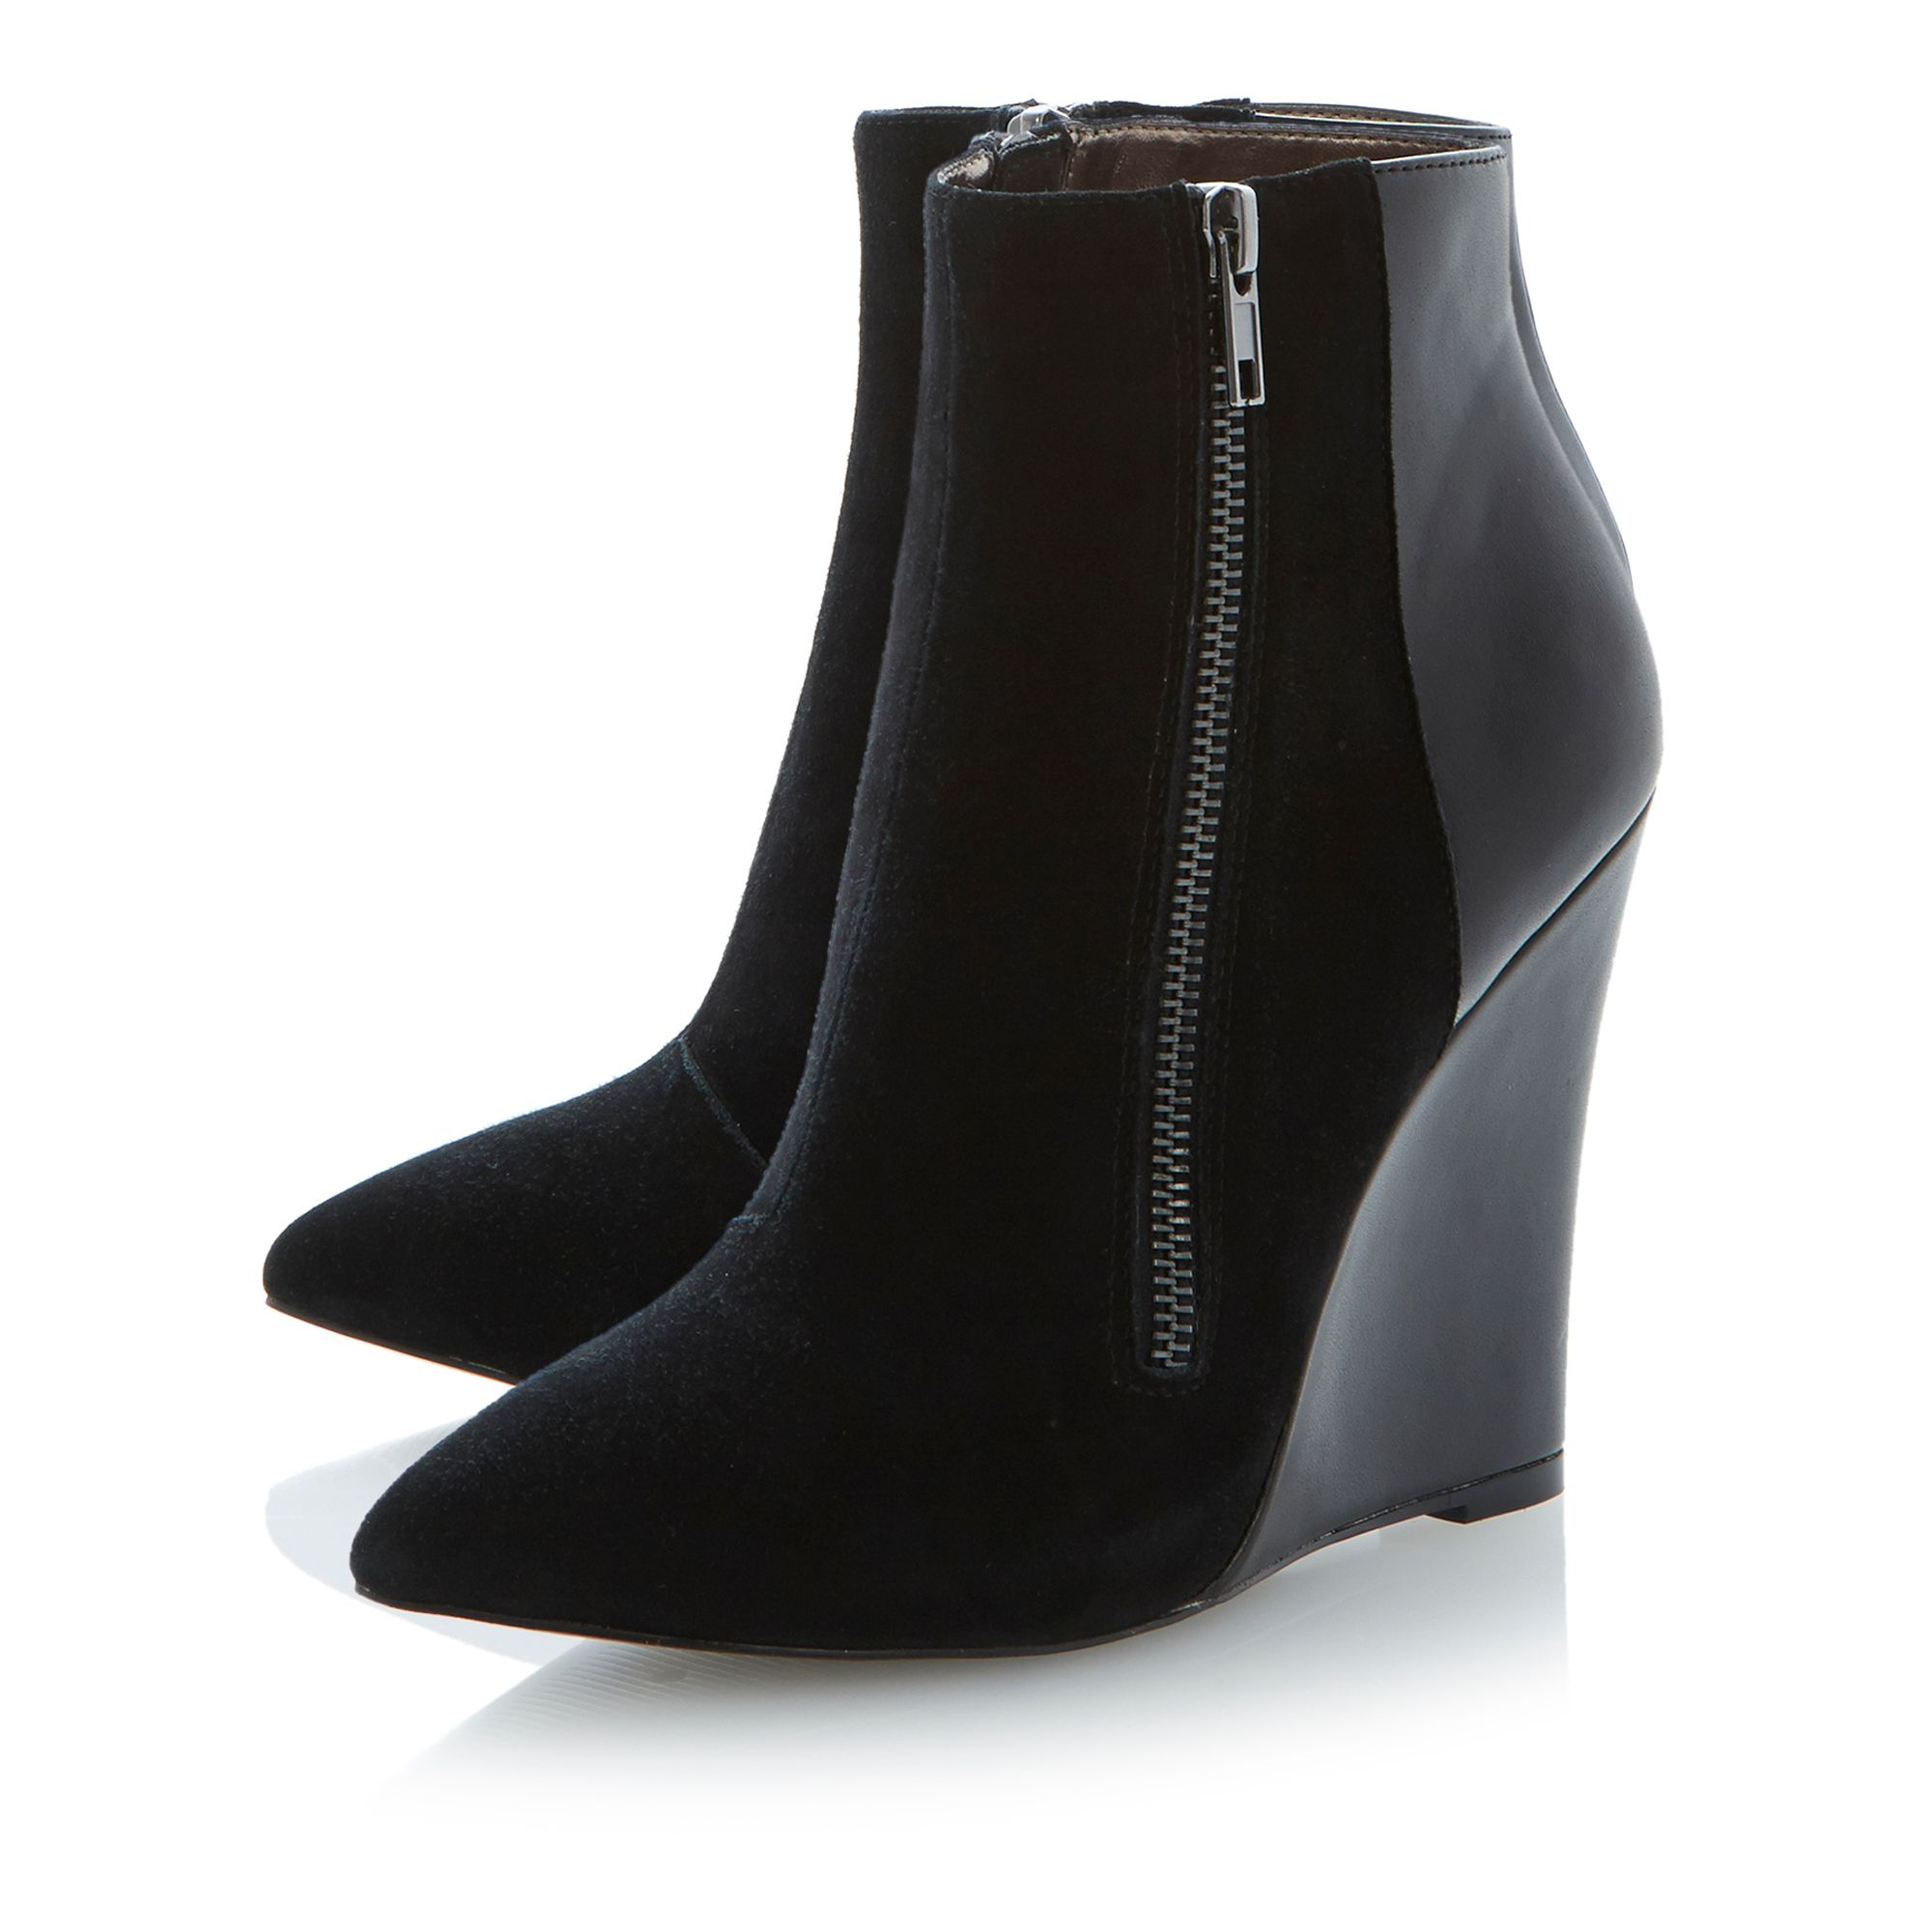 Steve madden Daaring Zip Detail Pointed Toe Wedge Ankle Boots in